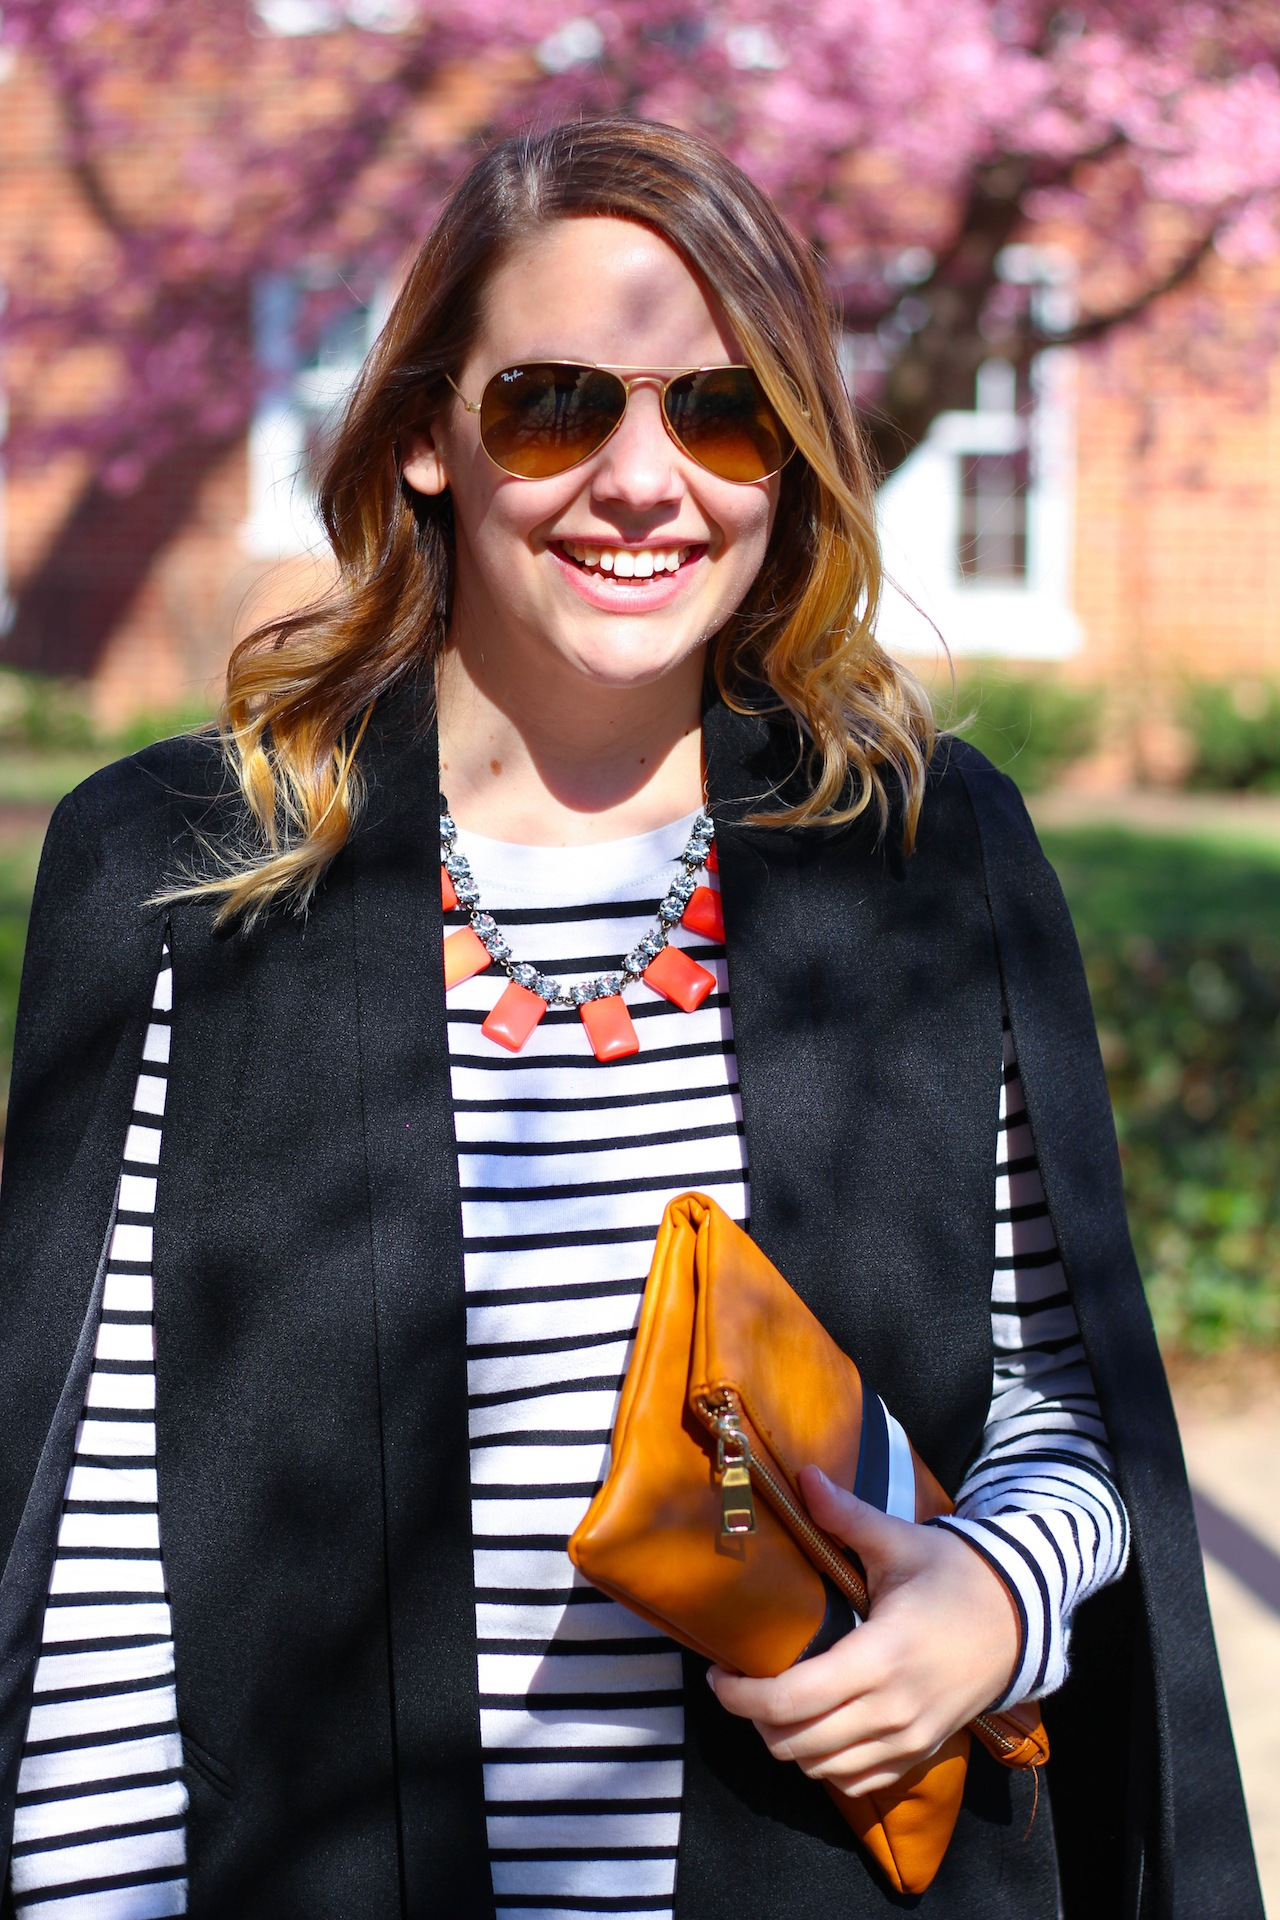 transitional winter to spring outfit idea